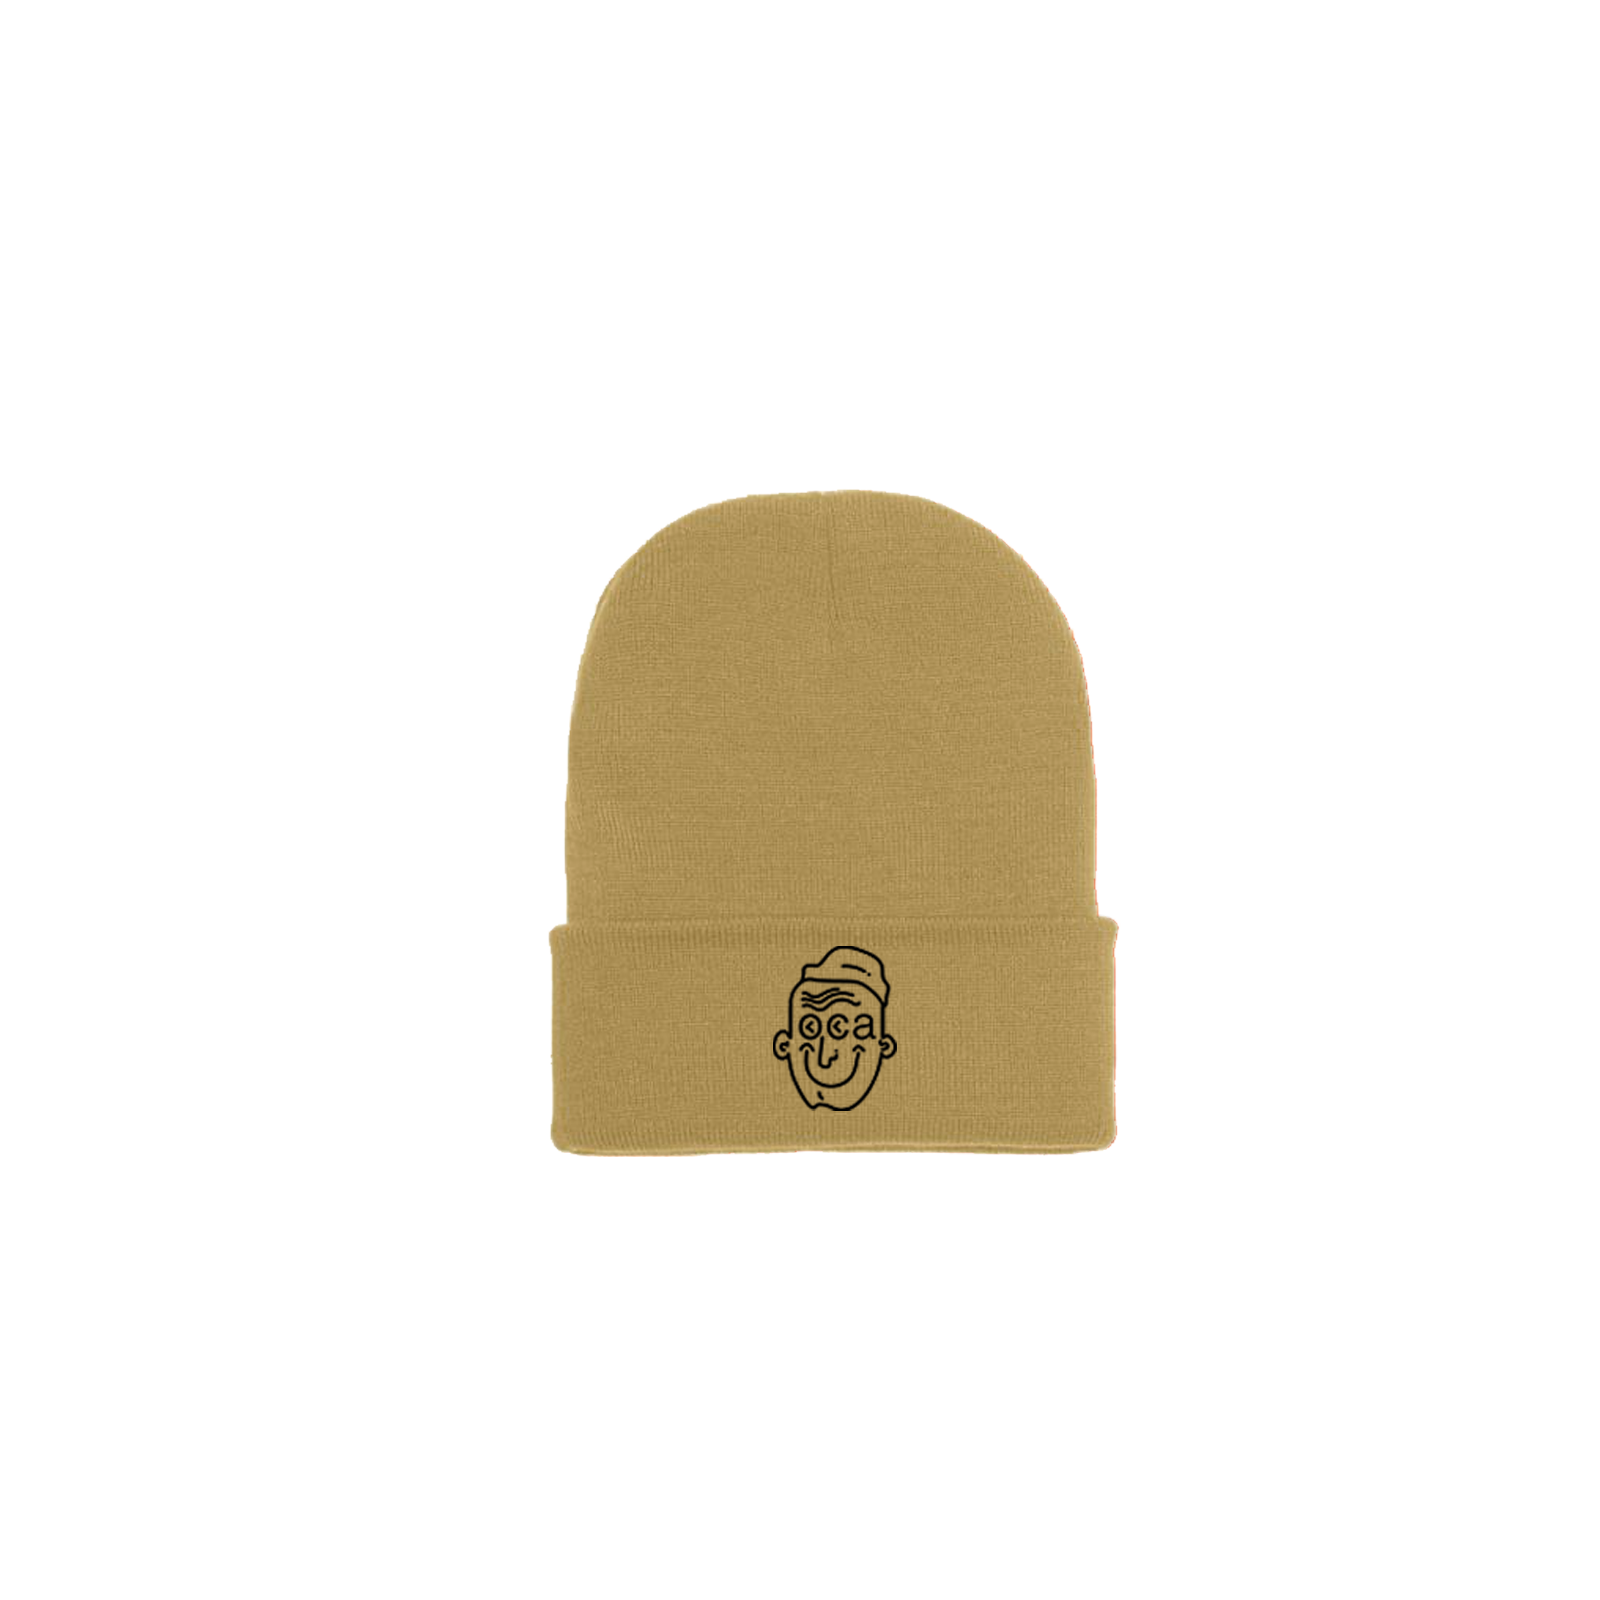 Good Things Double Fold Mustard Beanie